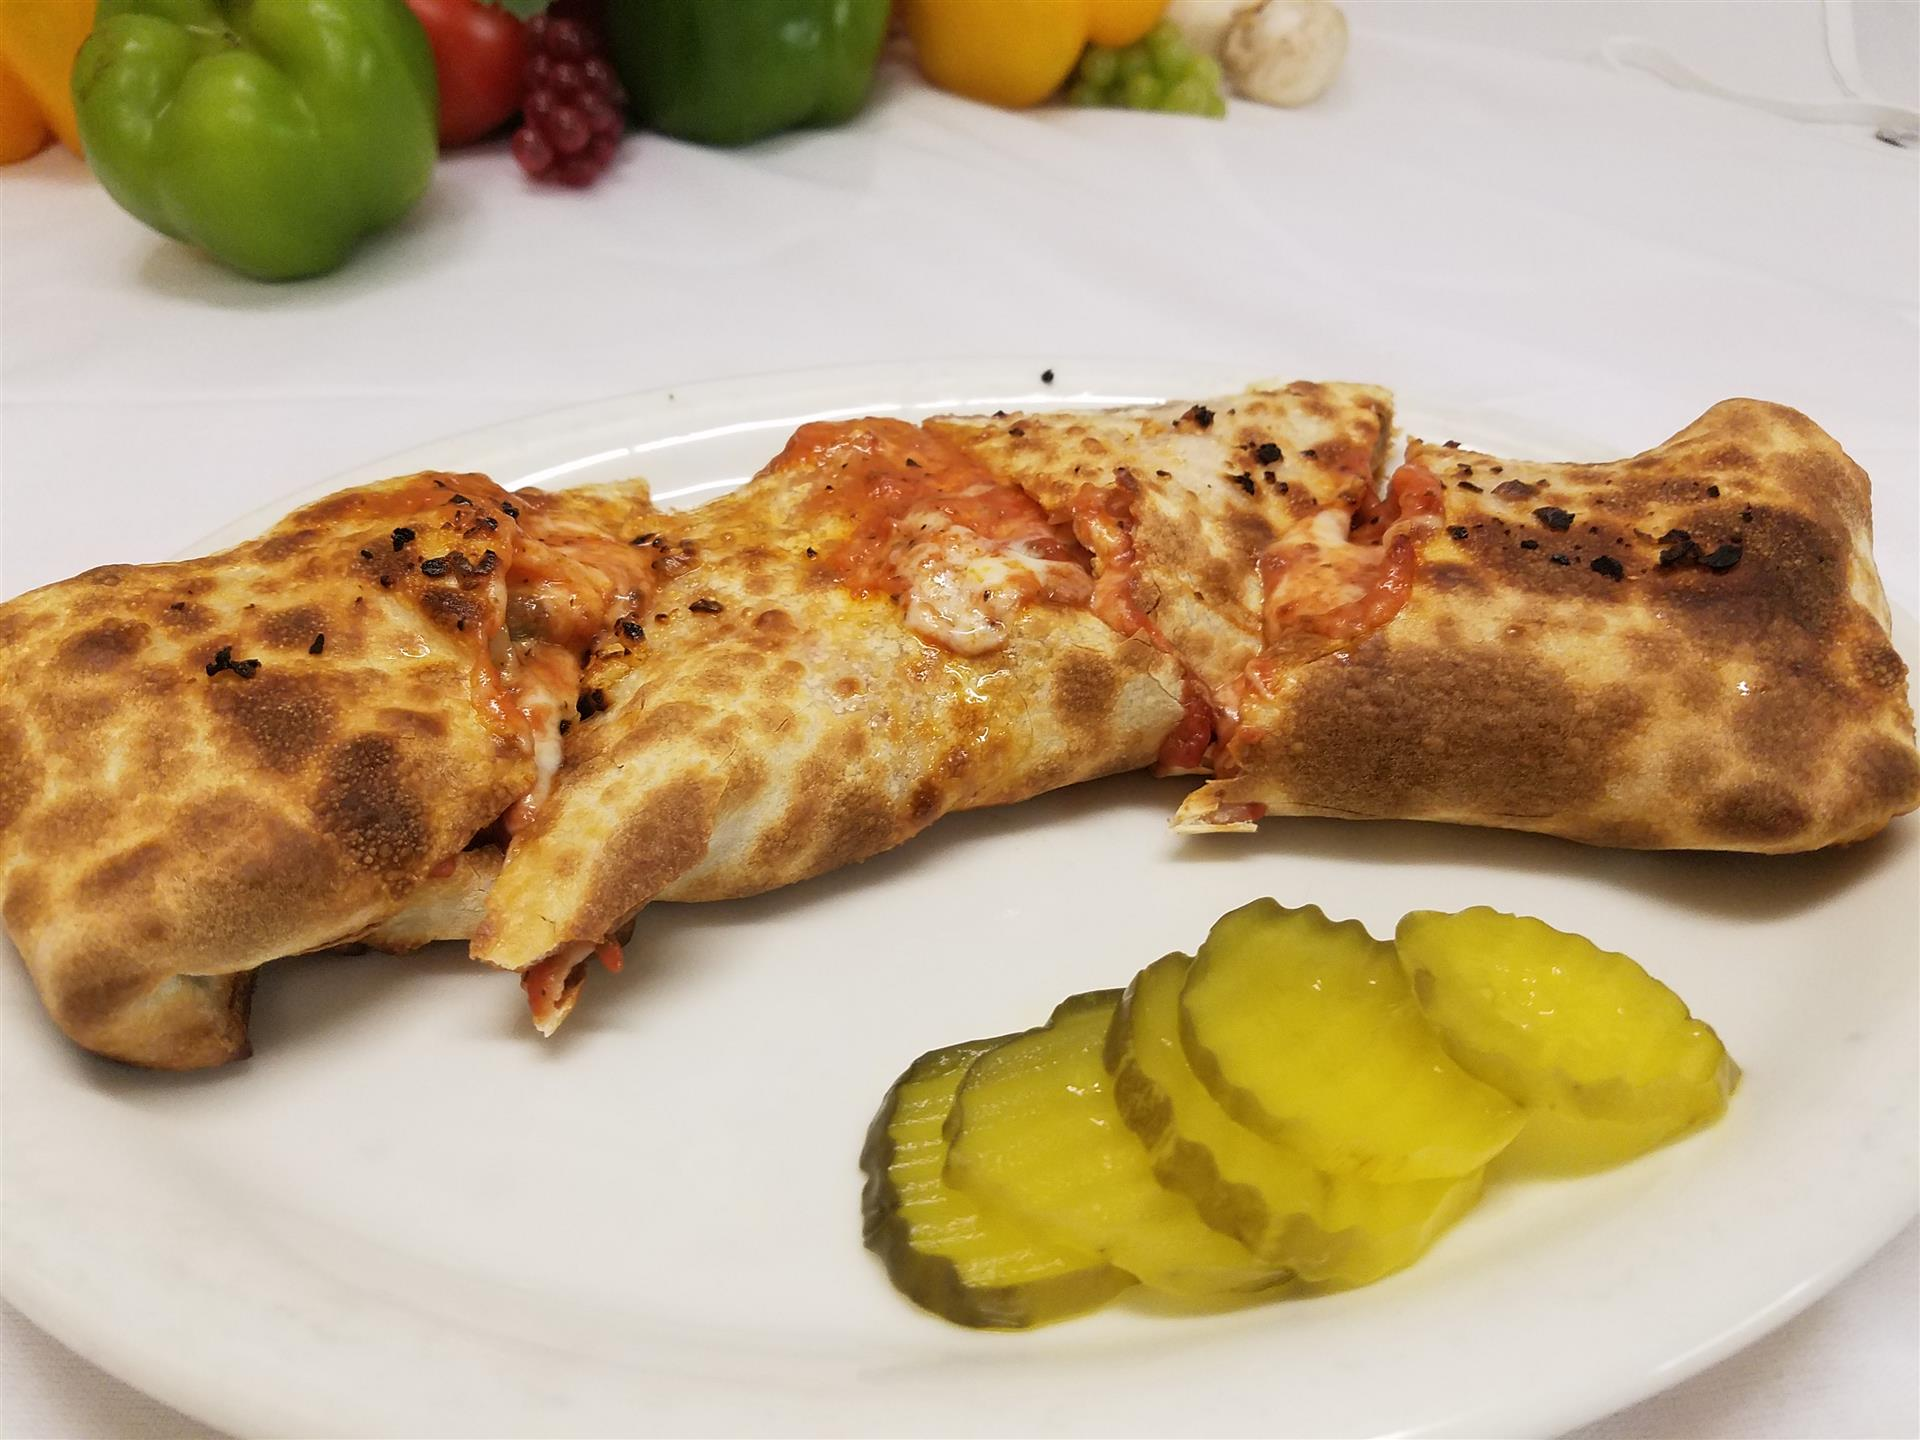 calzone with pickles on the side